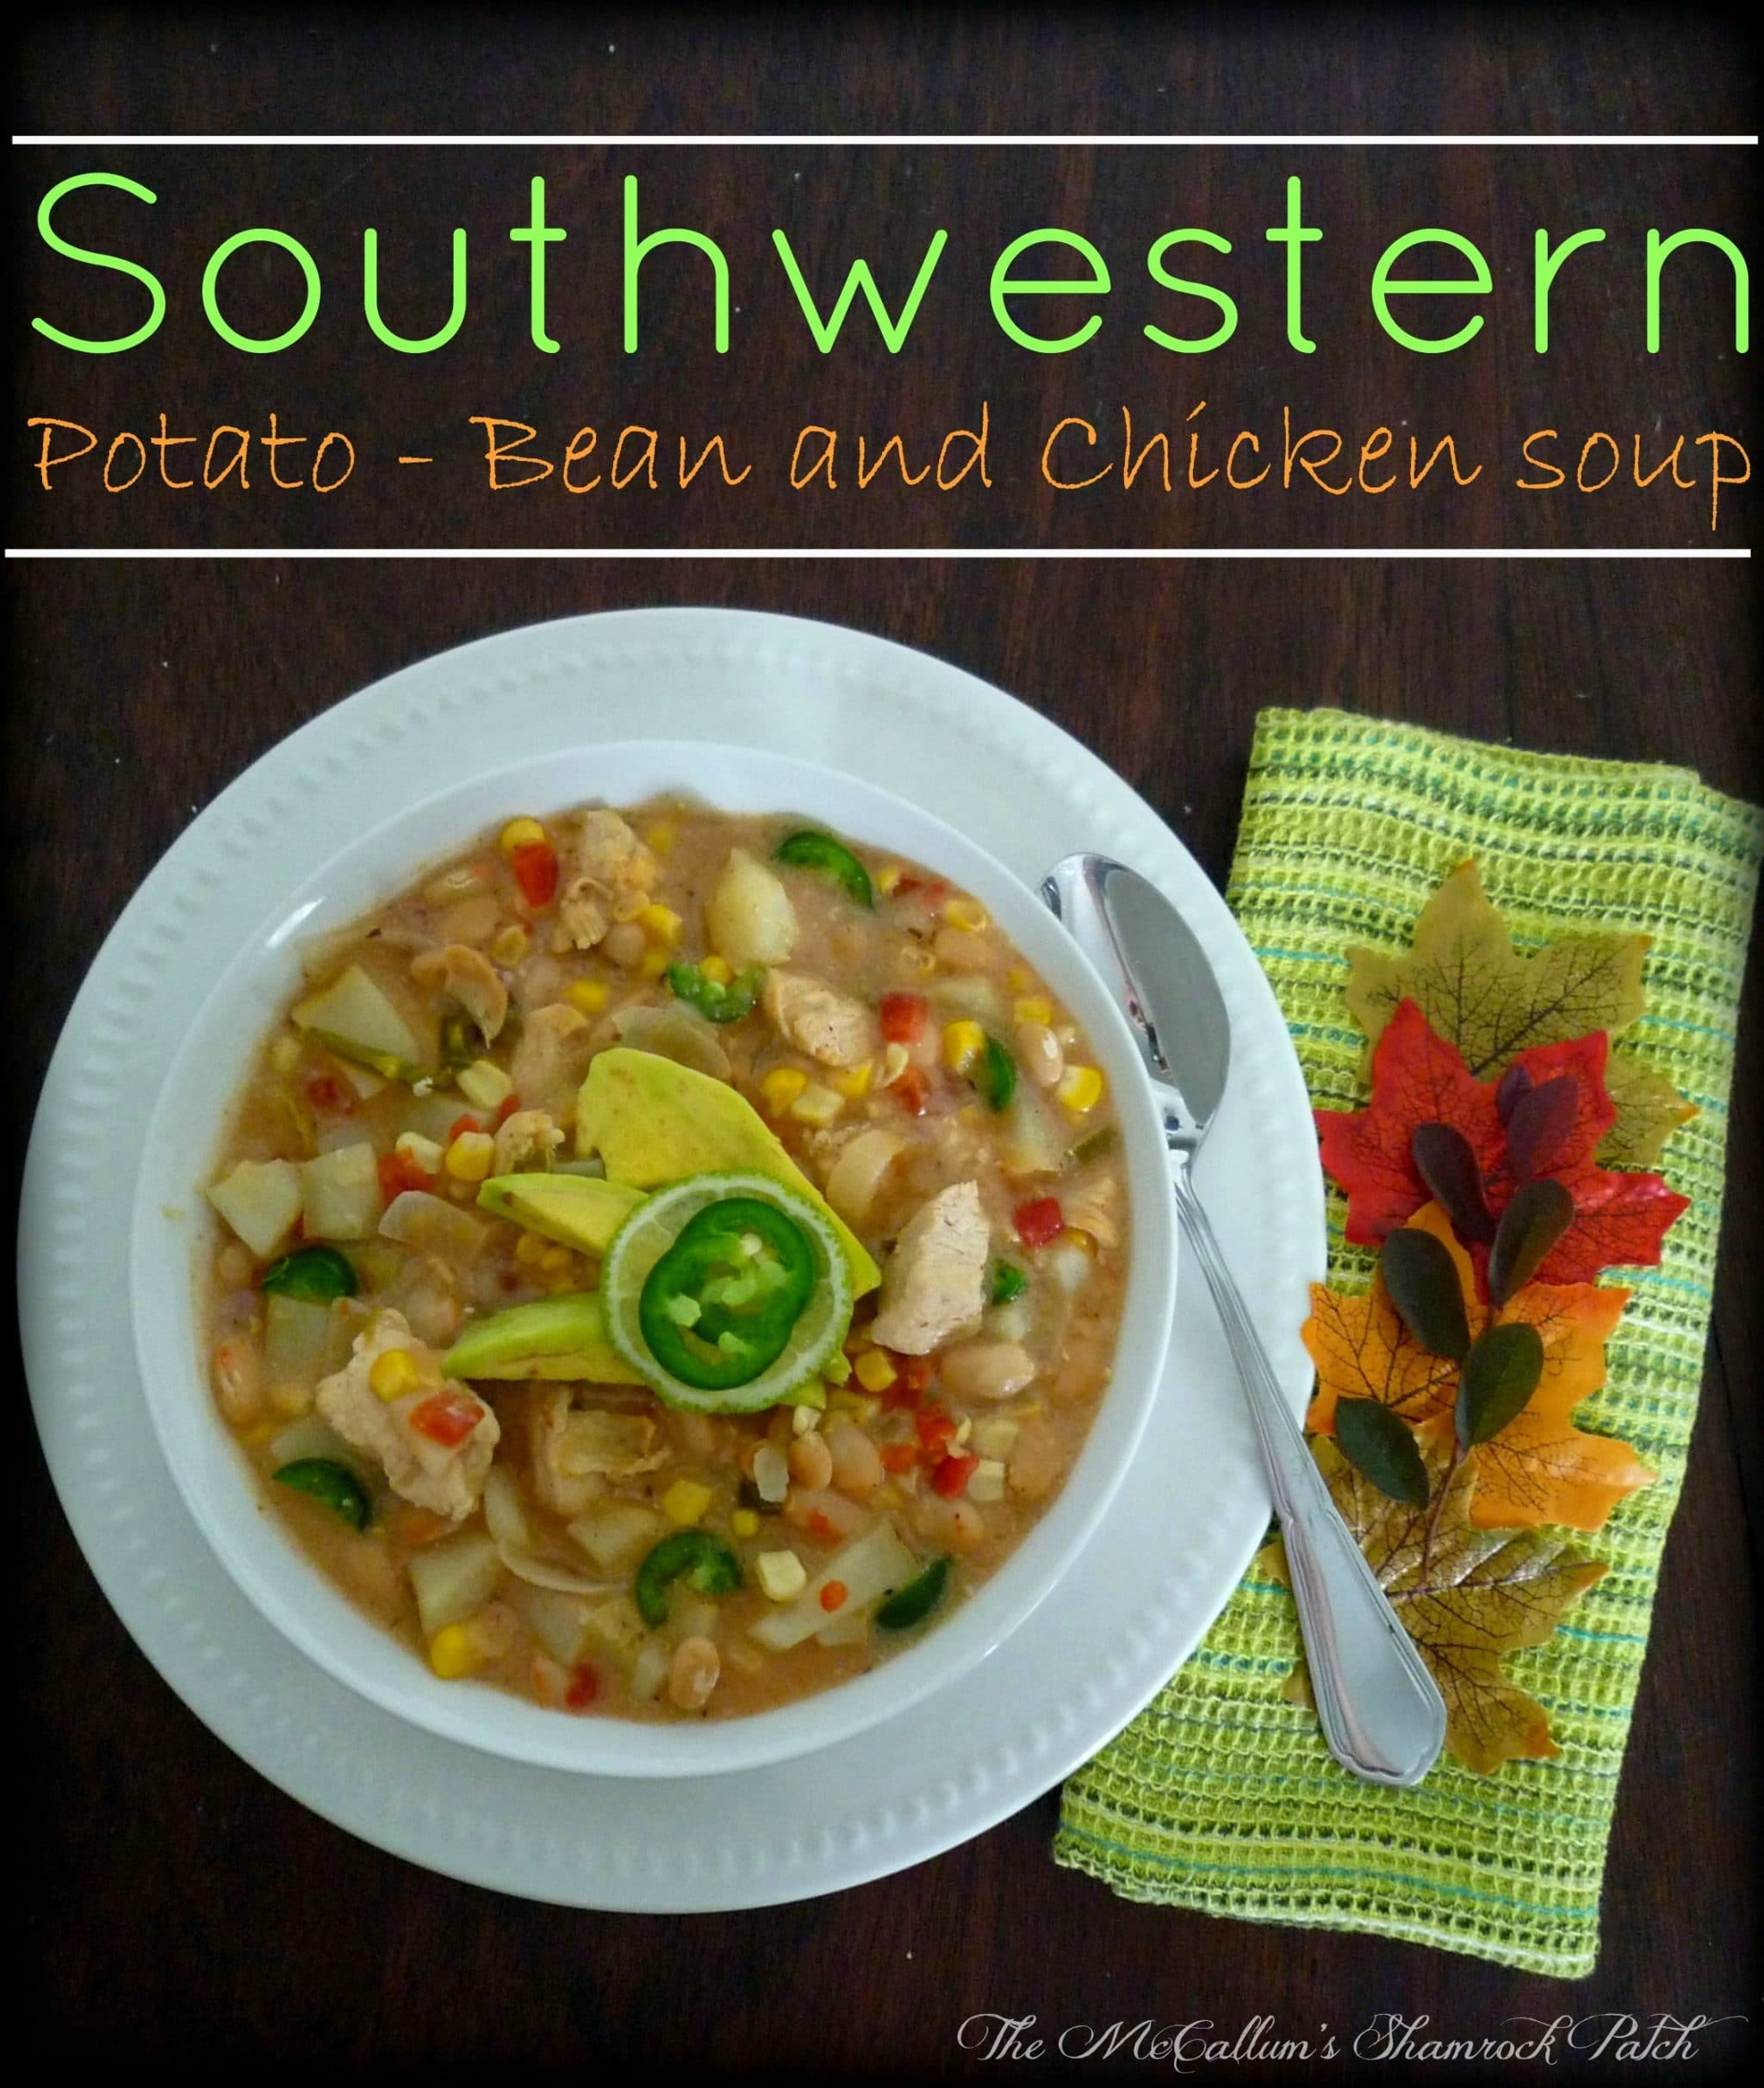 #SouthWestern #Potato #Bean and #Chicken #soup